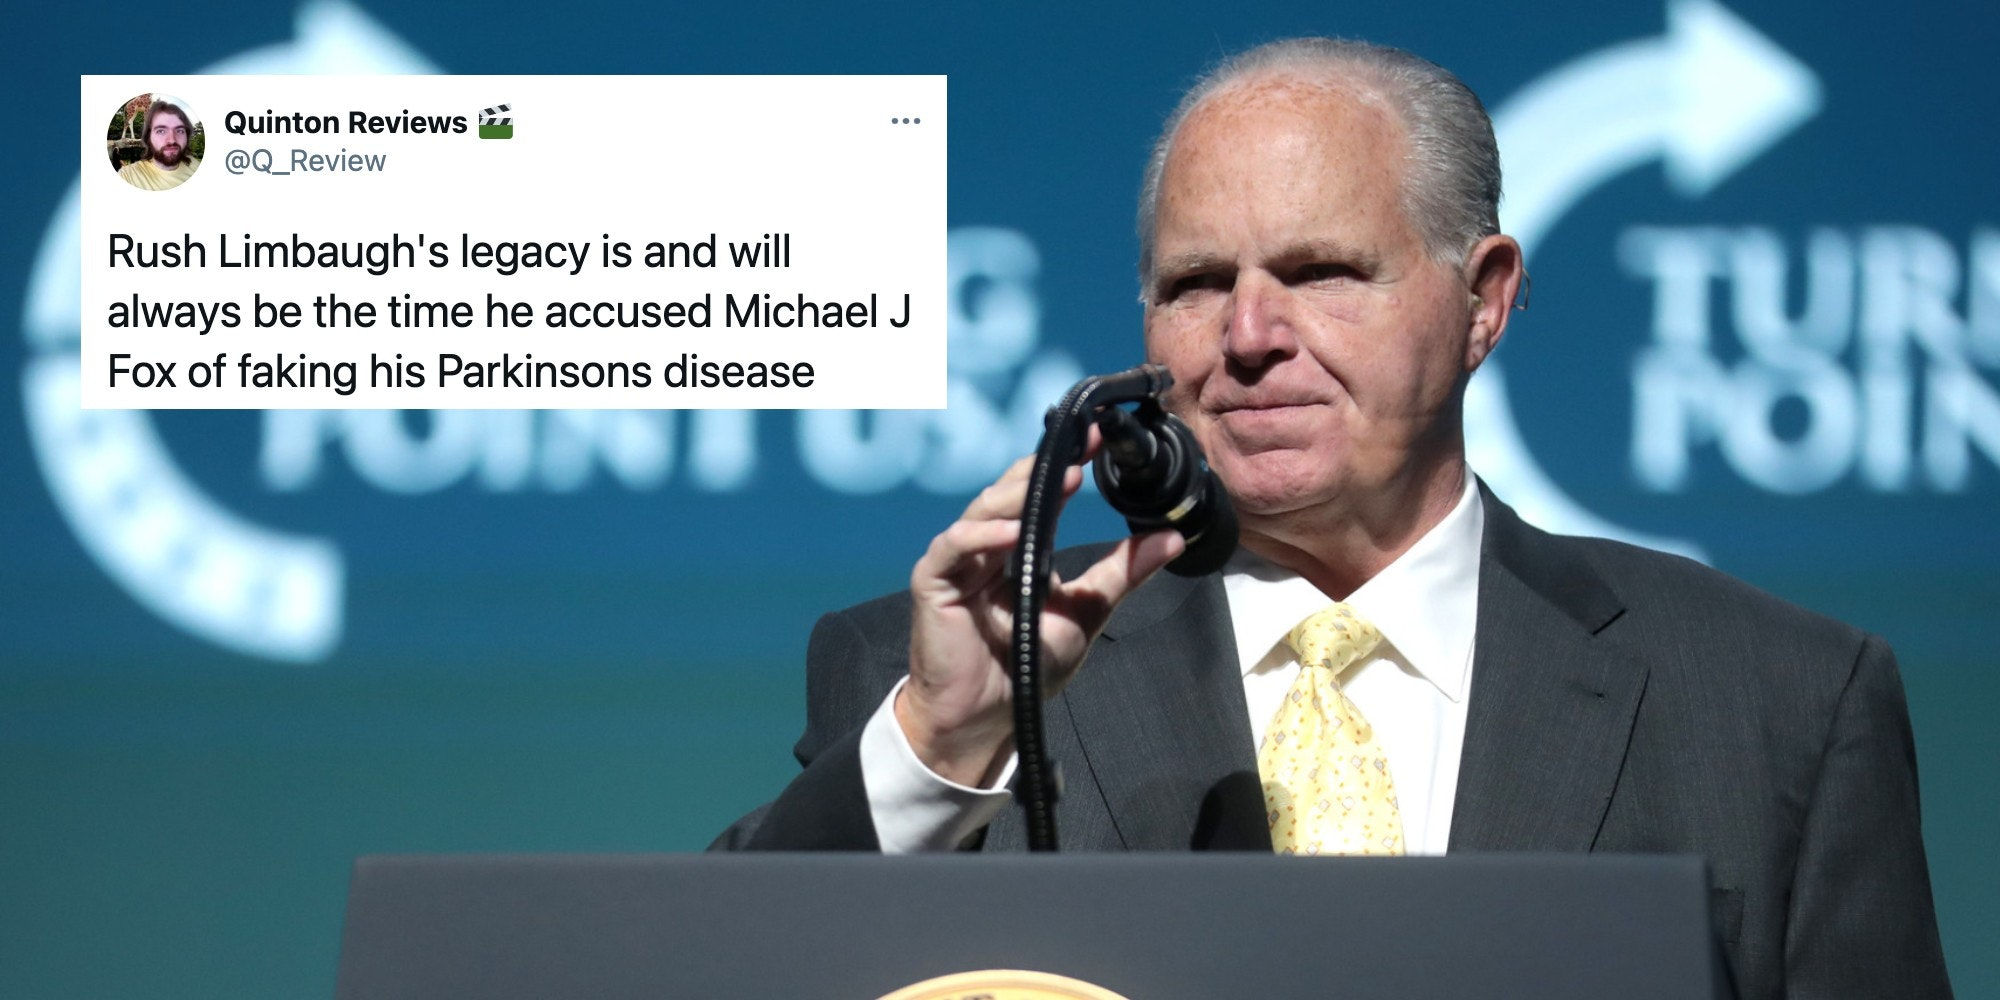 Rush Limbaugh next to a tweet about his mockery of Michael J. Fox